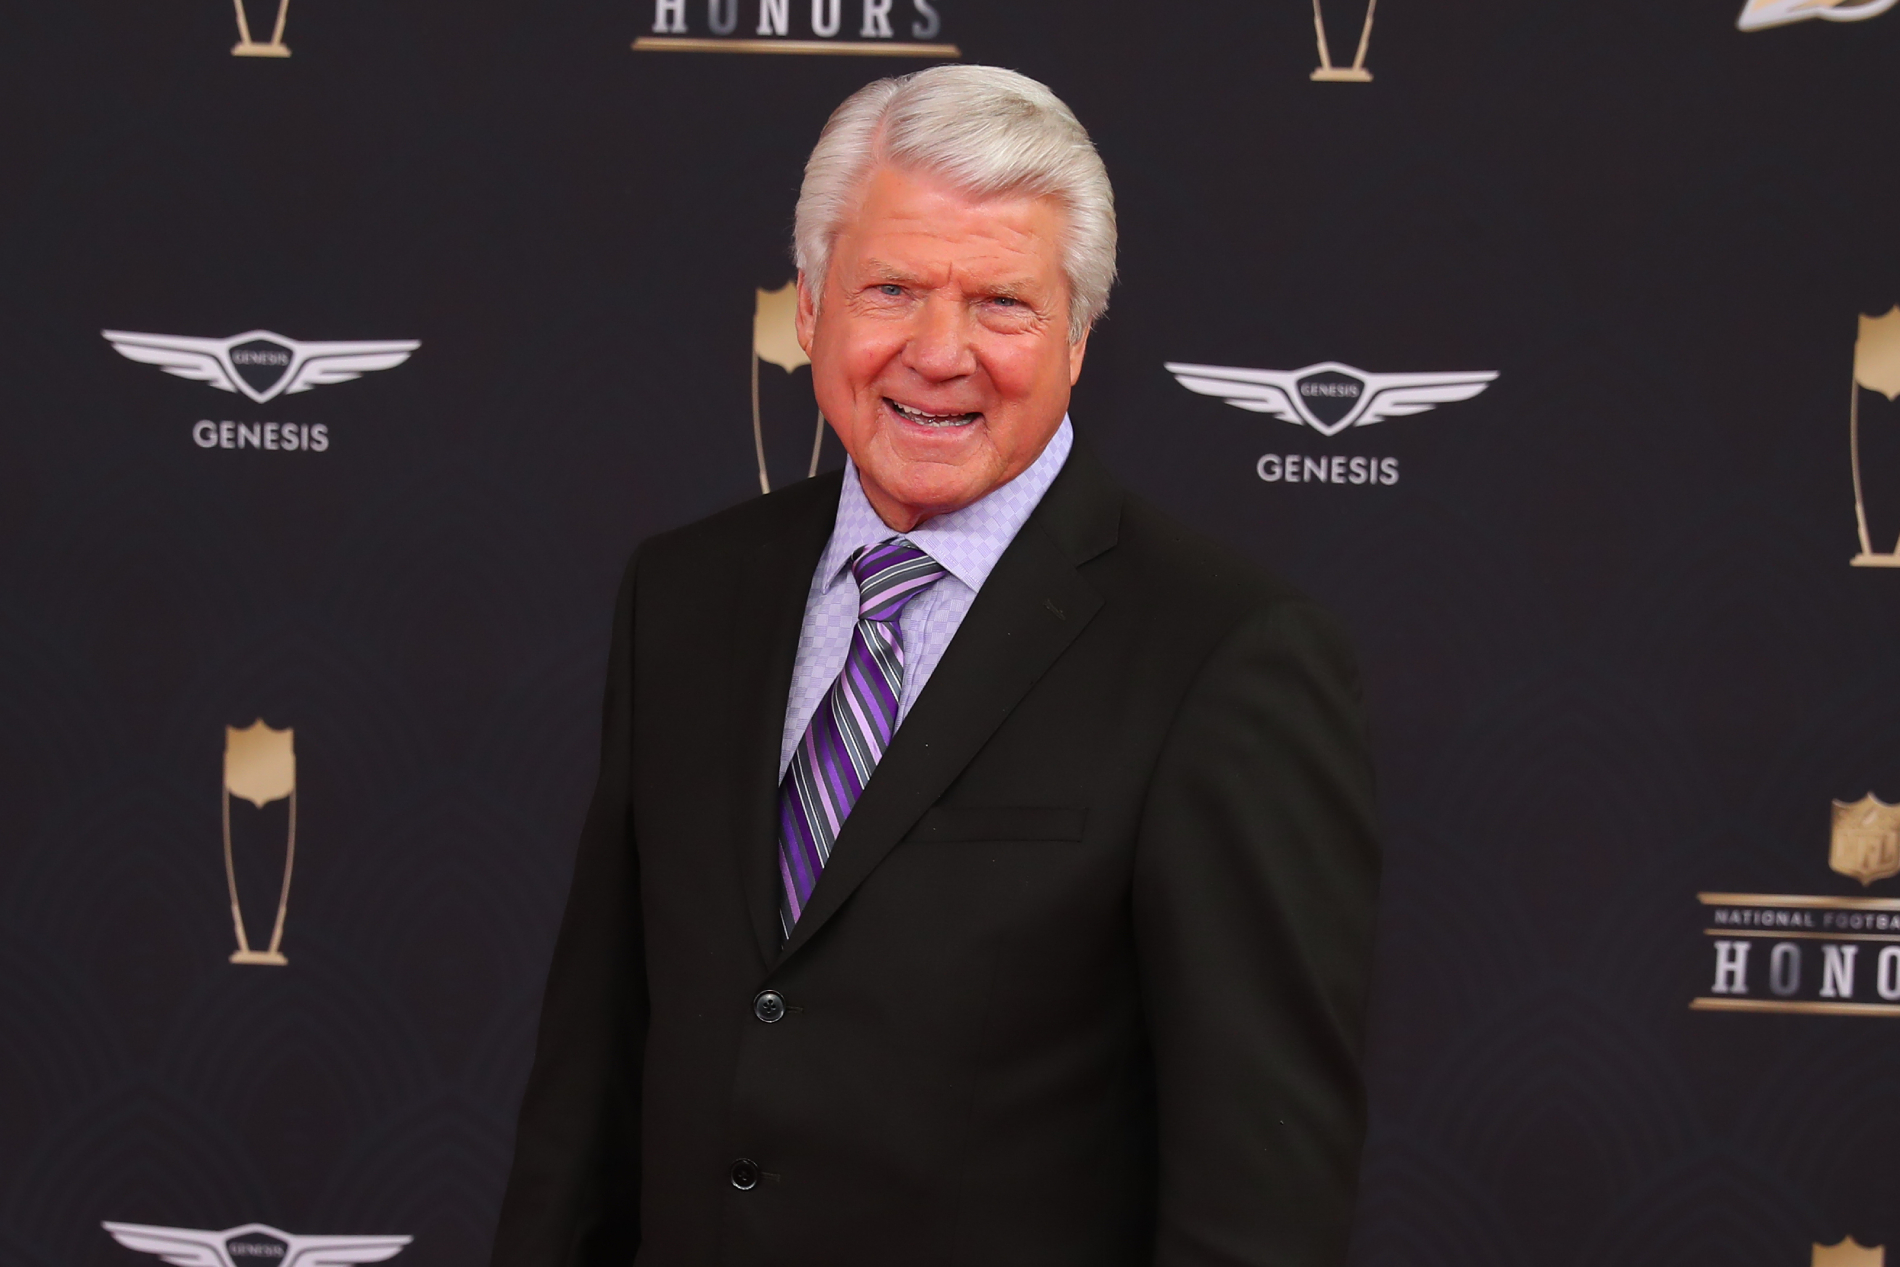 Jimmy Johnson is a Dallas Cowboys legend for the two Super Bowls he won there. After his time in Dallas, though, a TV show saved his life.